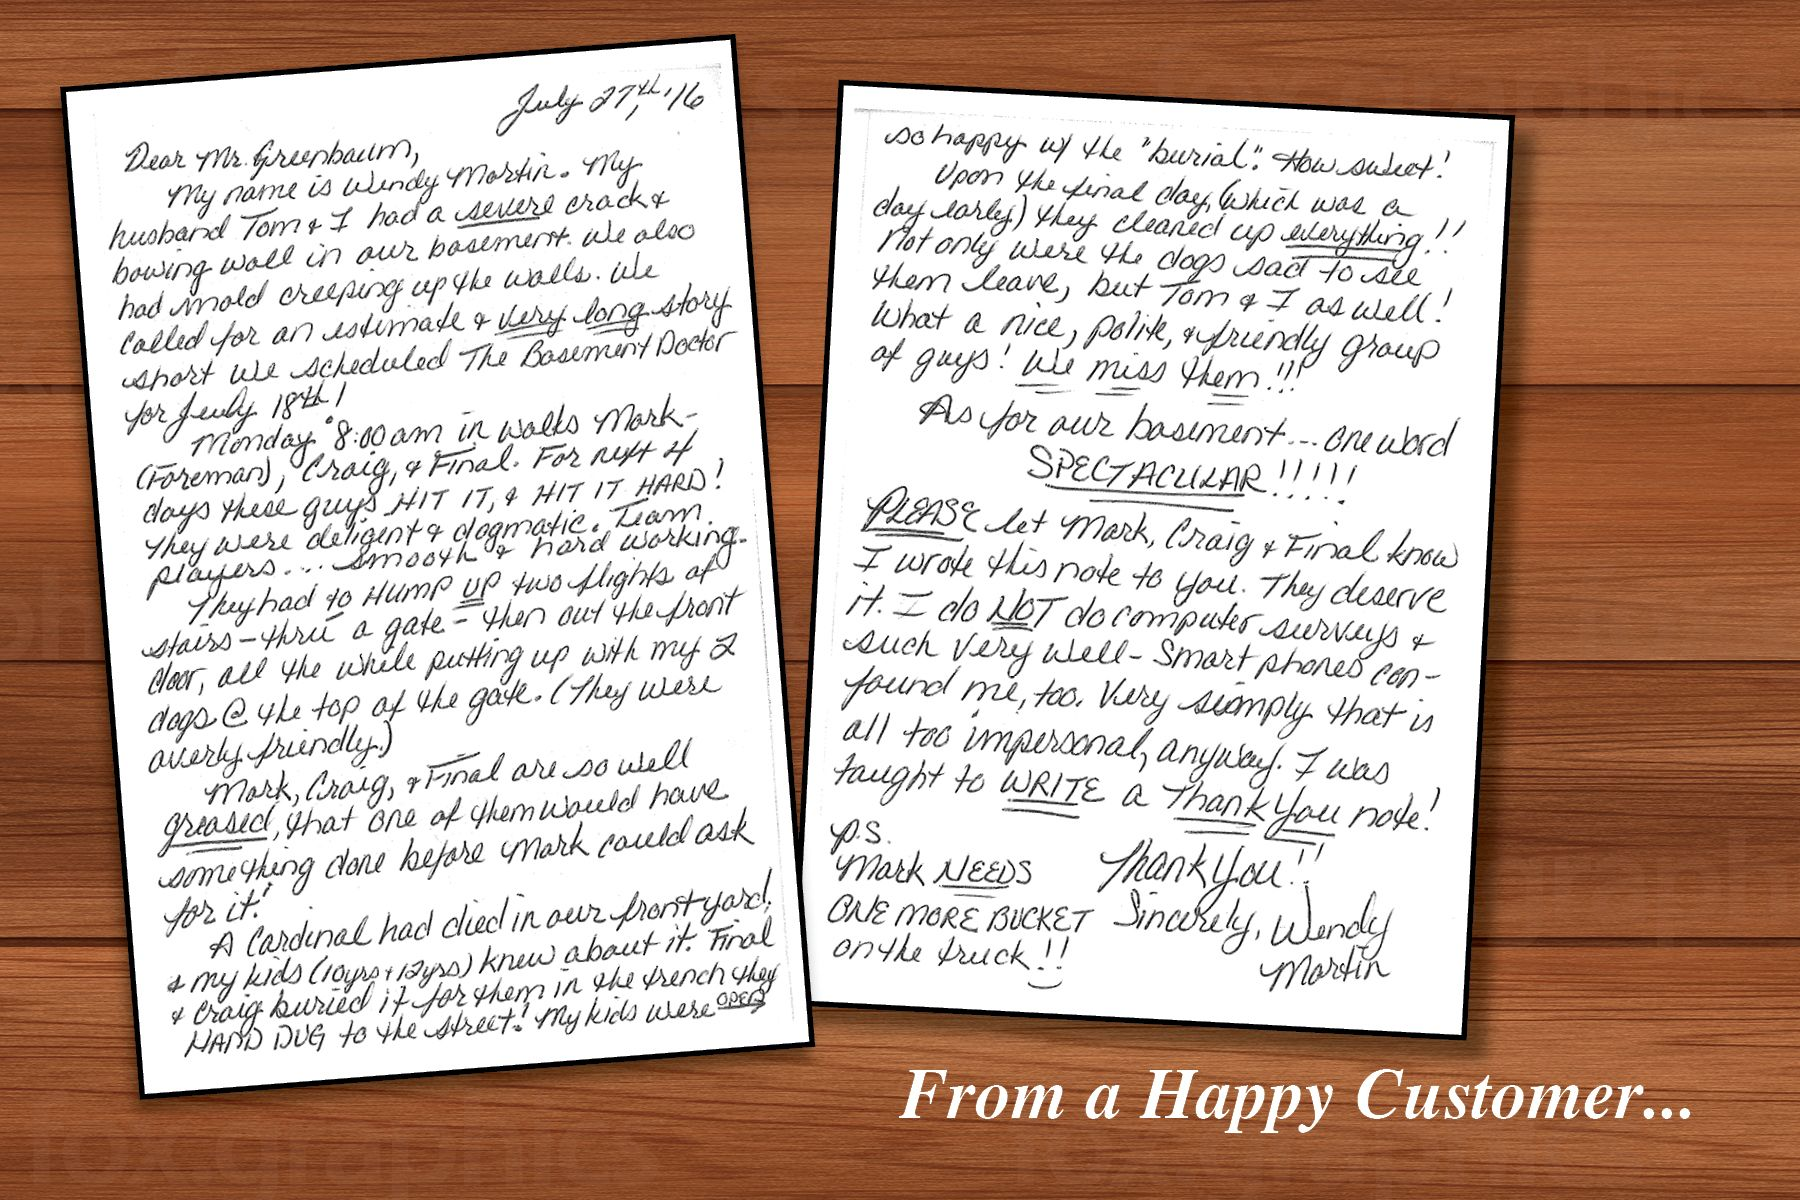 The office staff, Project Managers and our Installation Technicians are lifted up by amazing letters of appreciation like this from our customers. So much time and effort goes in to every project we hep with and this type of response from our customers is heart warming. Thank you Mr and Mrs Martin for the opportunity to help you and for taking the time to write this kind letter.